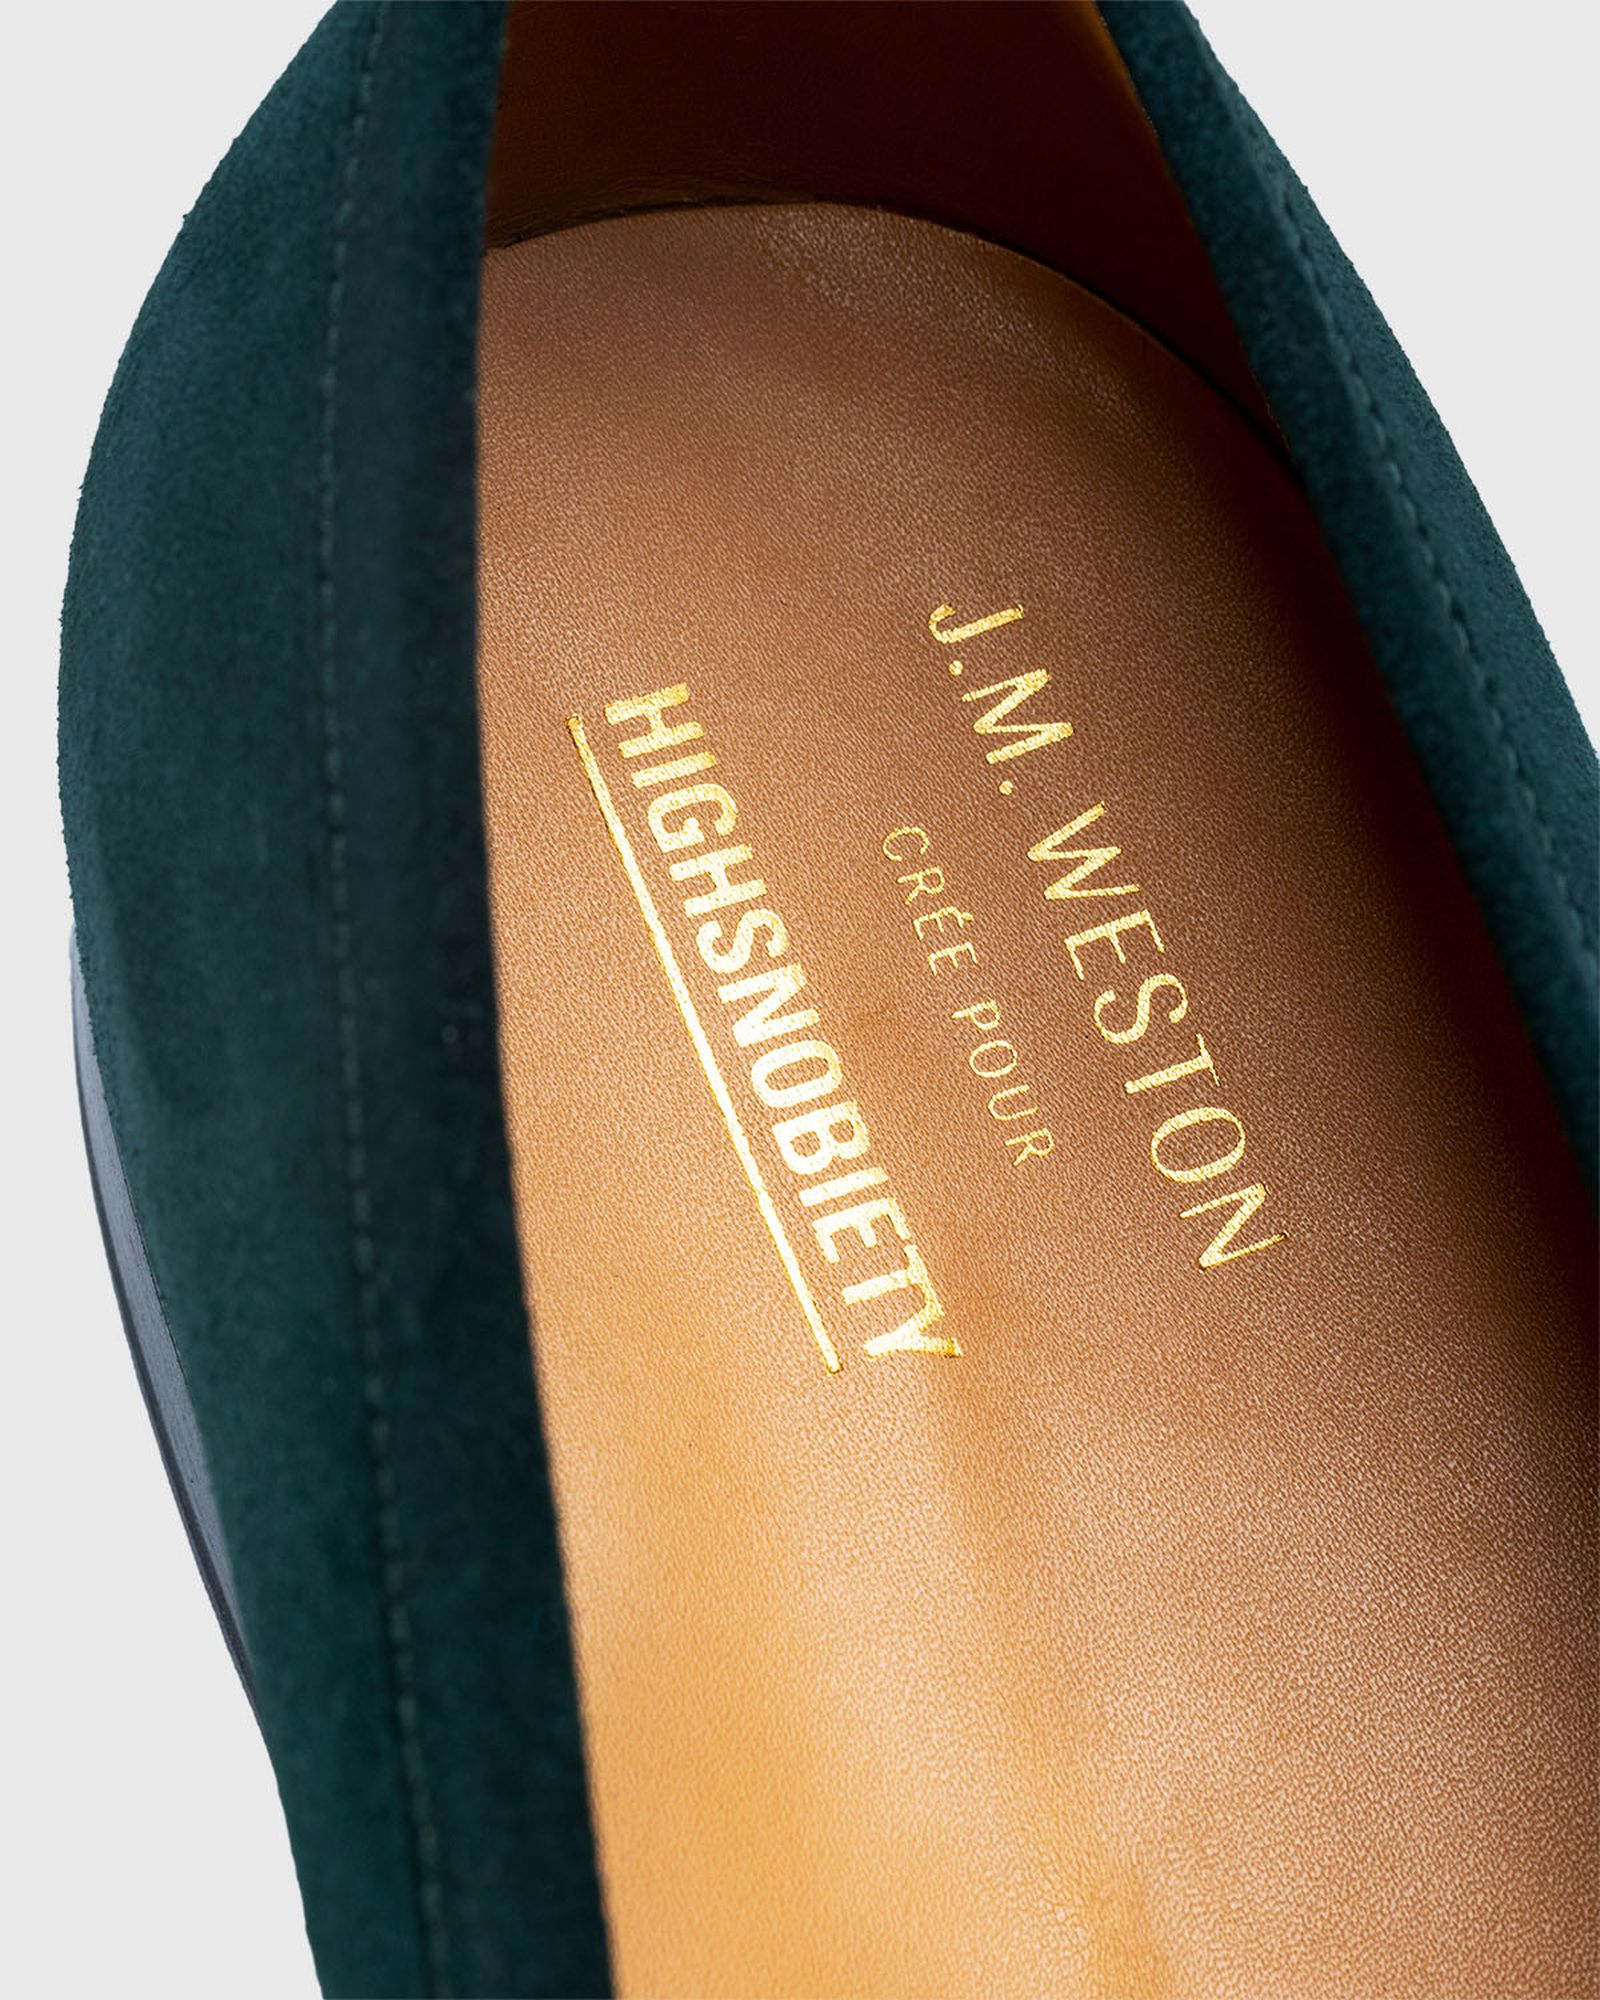 not-in-paris-releases-jm-westion-loafer-01